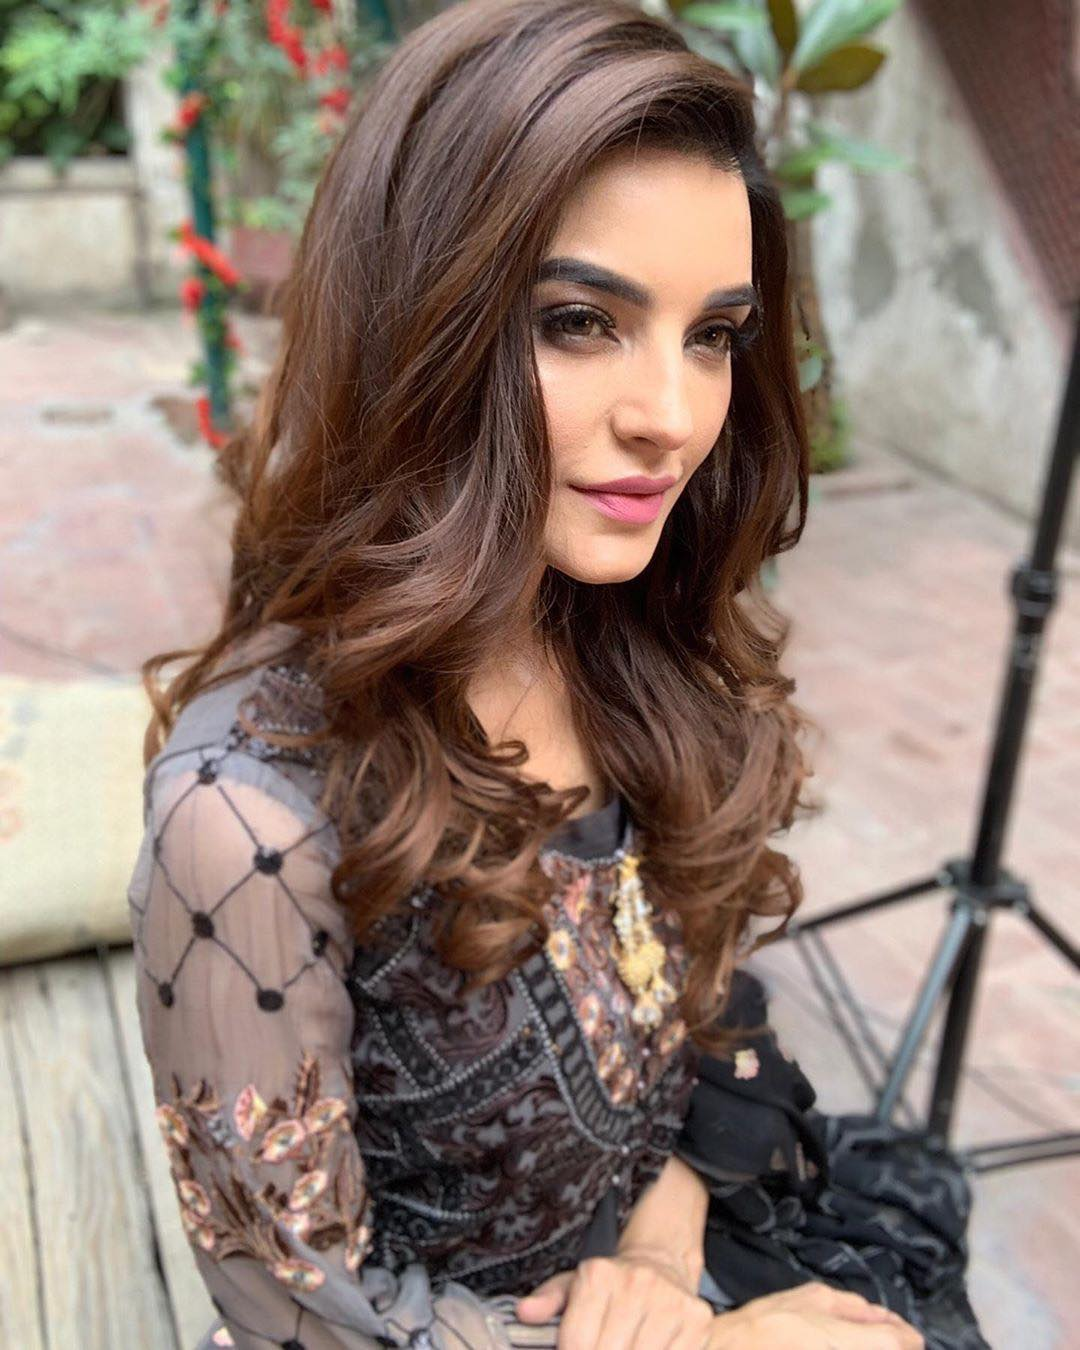 New Awesome Pictures of Actress Sadia Khan